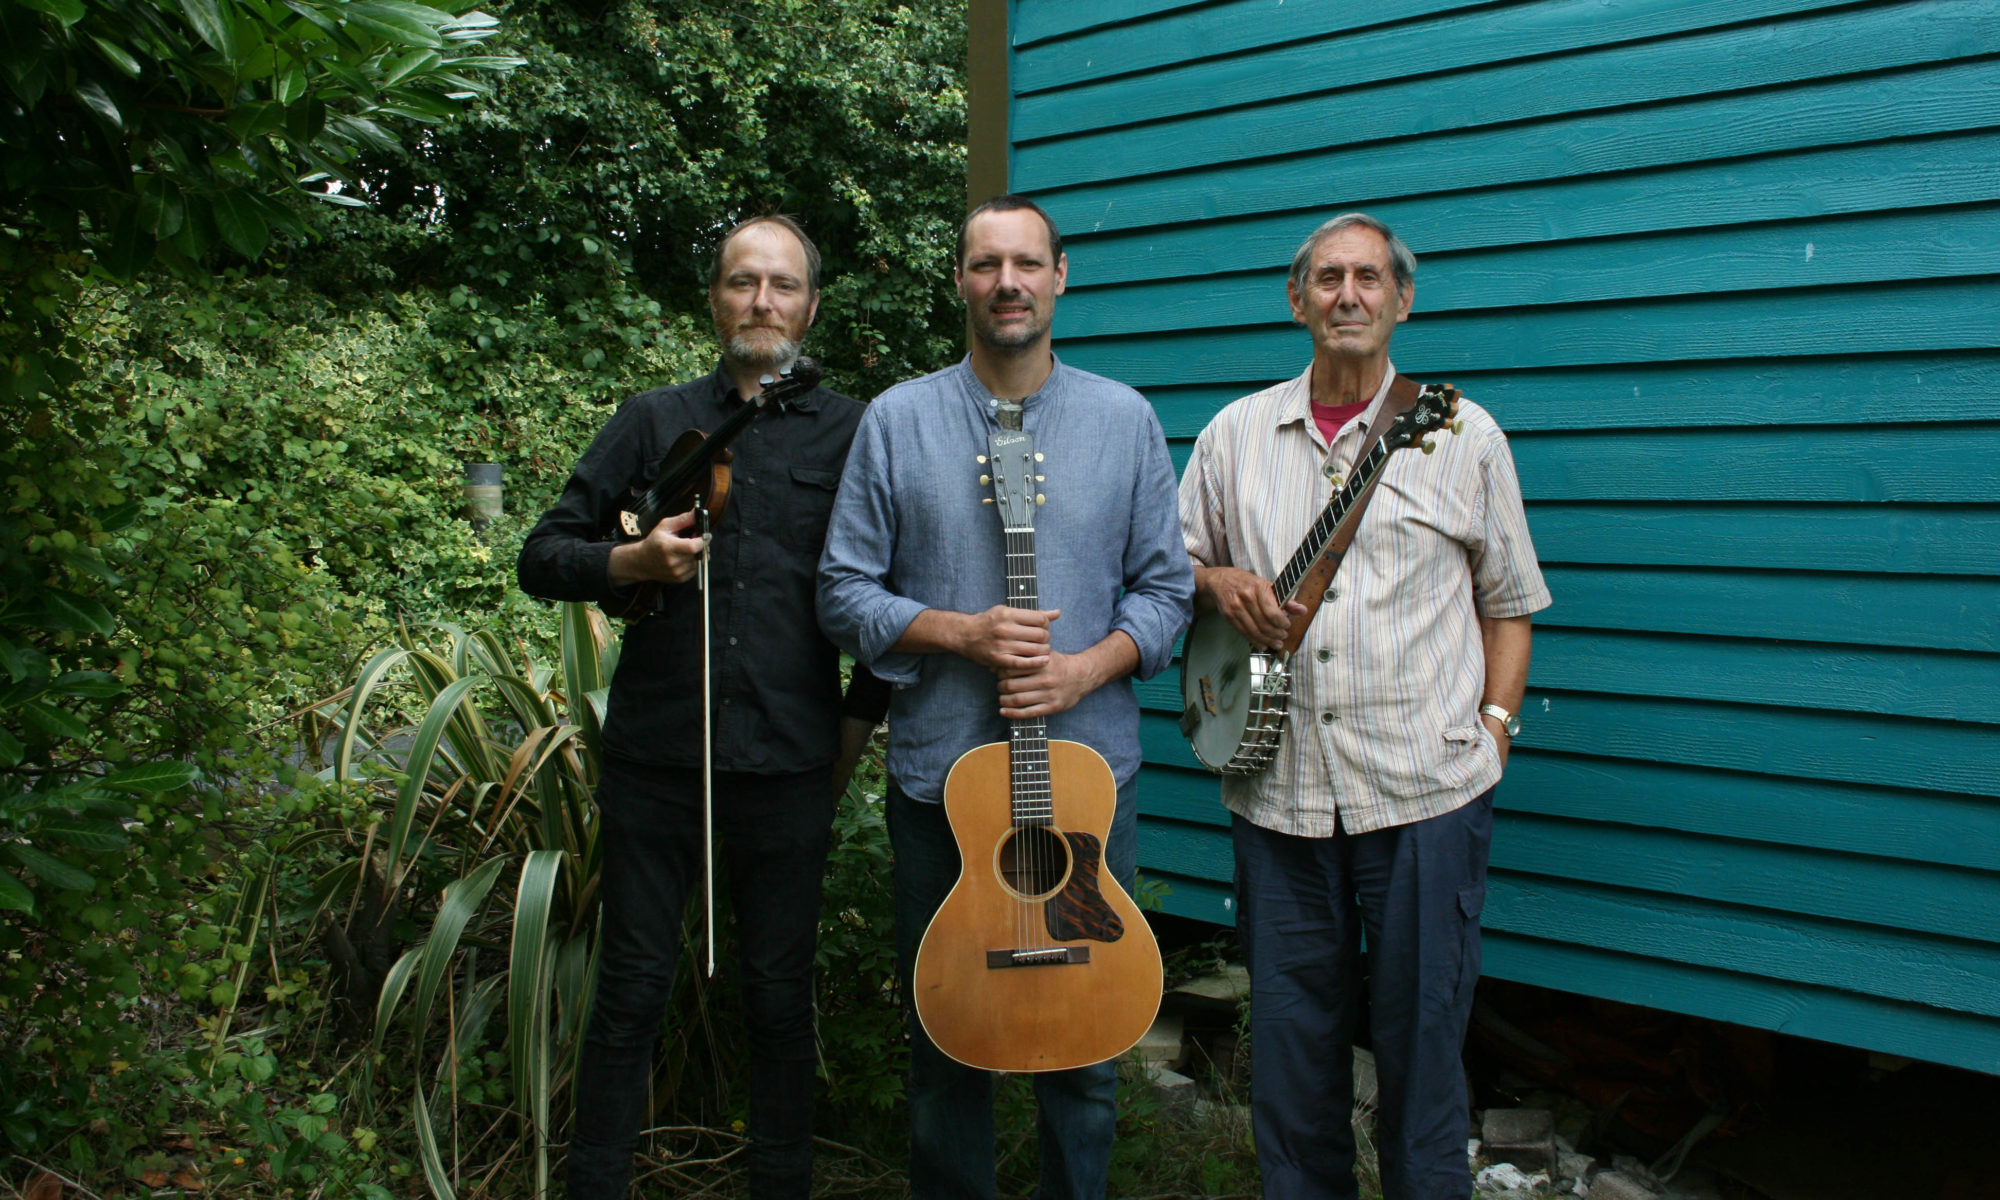 New Deal String Band